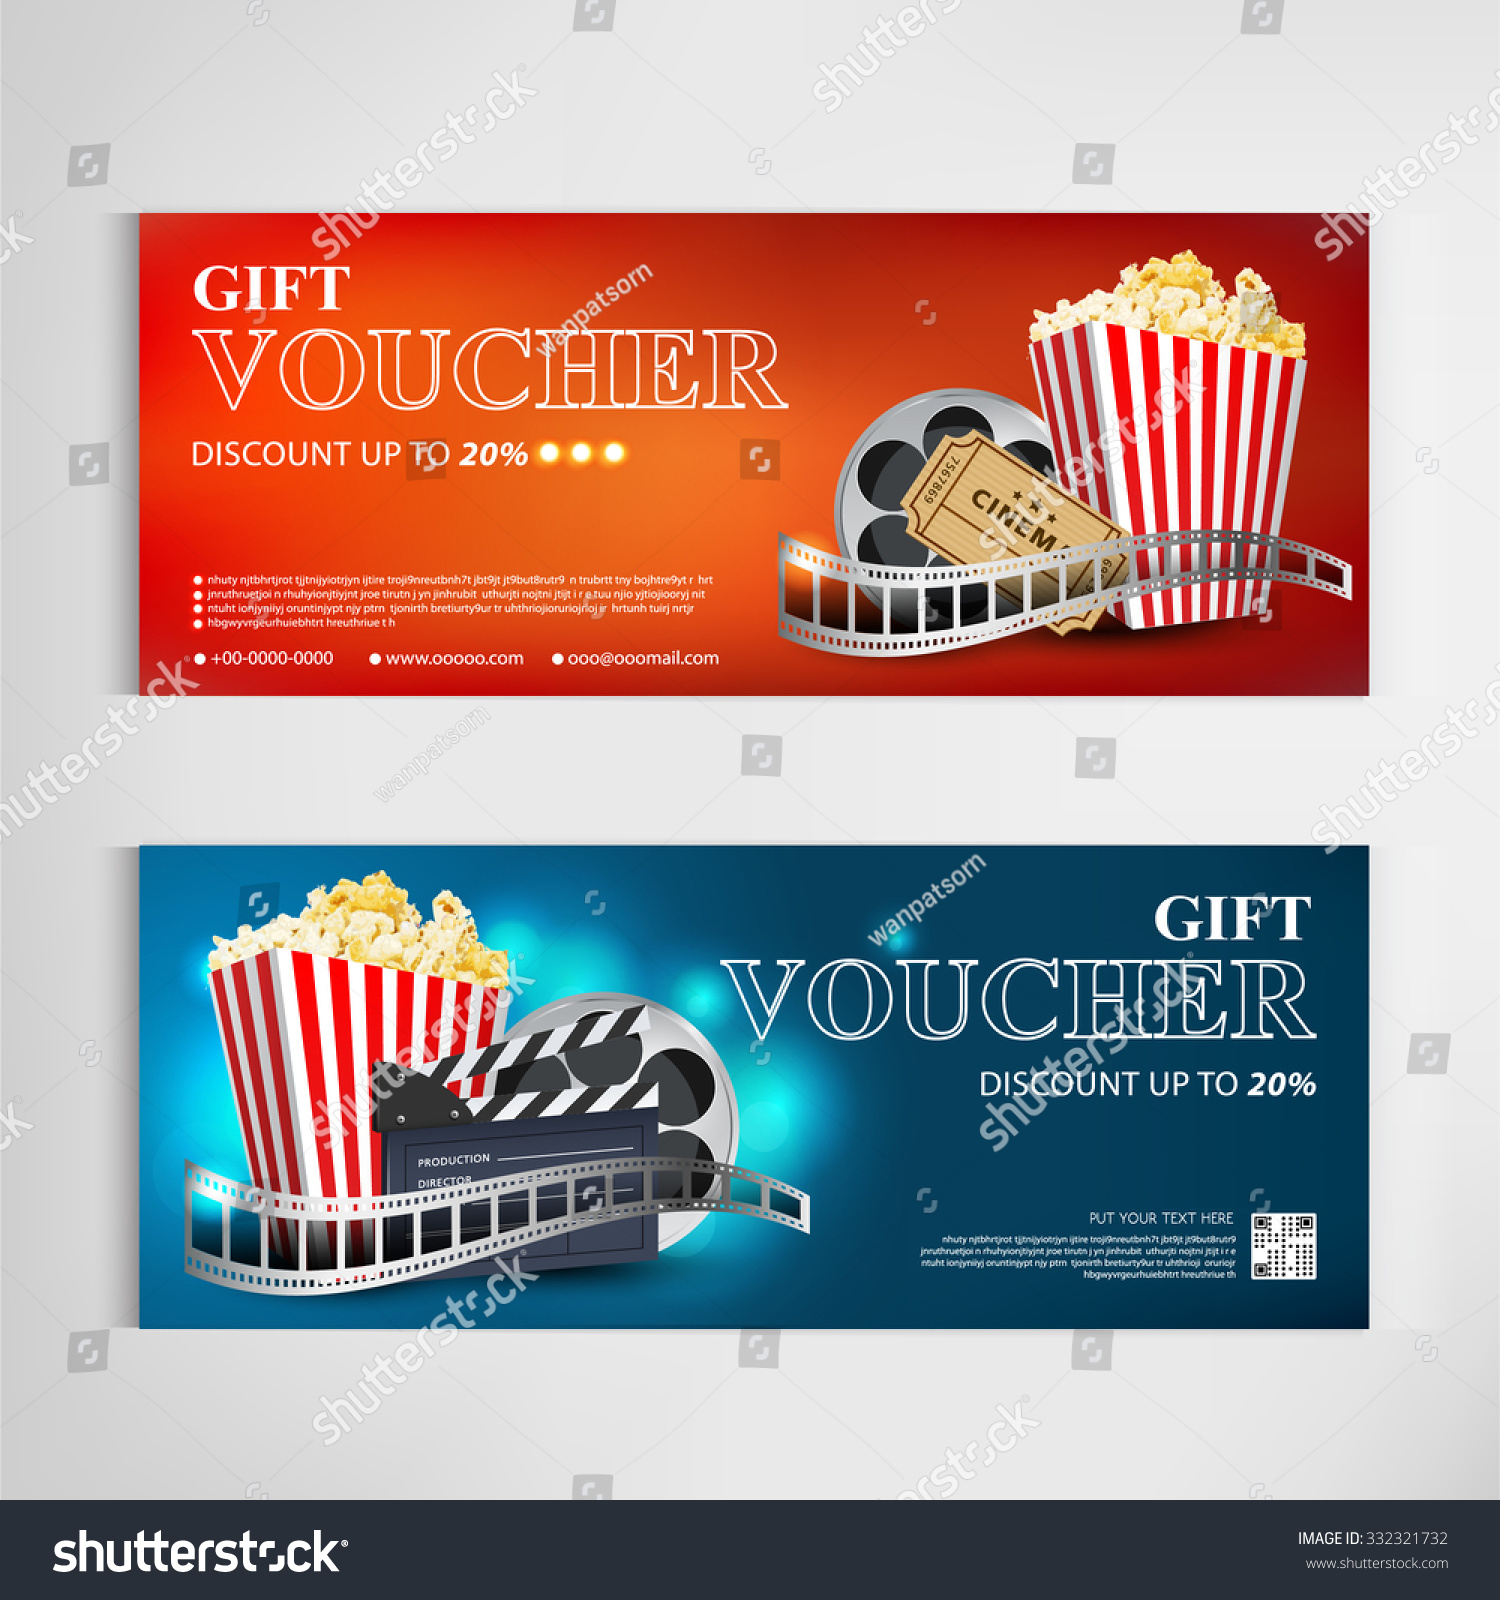 Gift Voucher Movie Template Modern Pattern Stock-Vektorgrafik ...